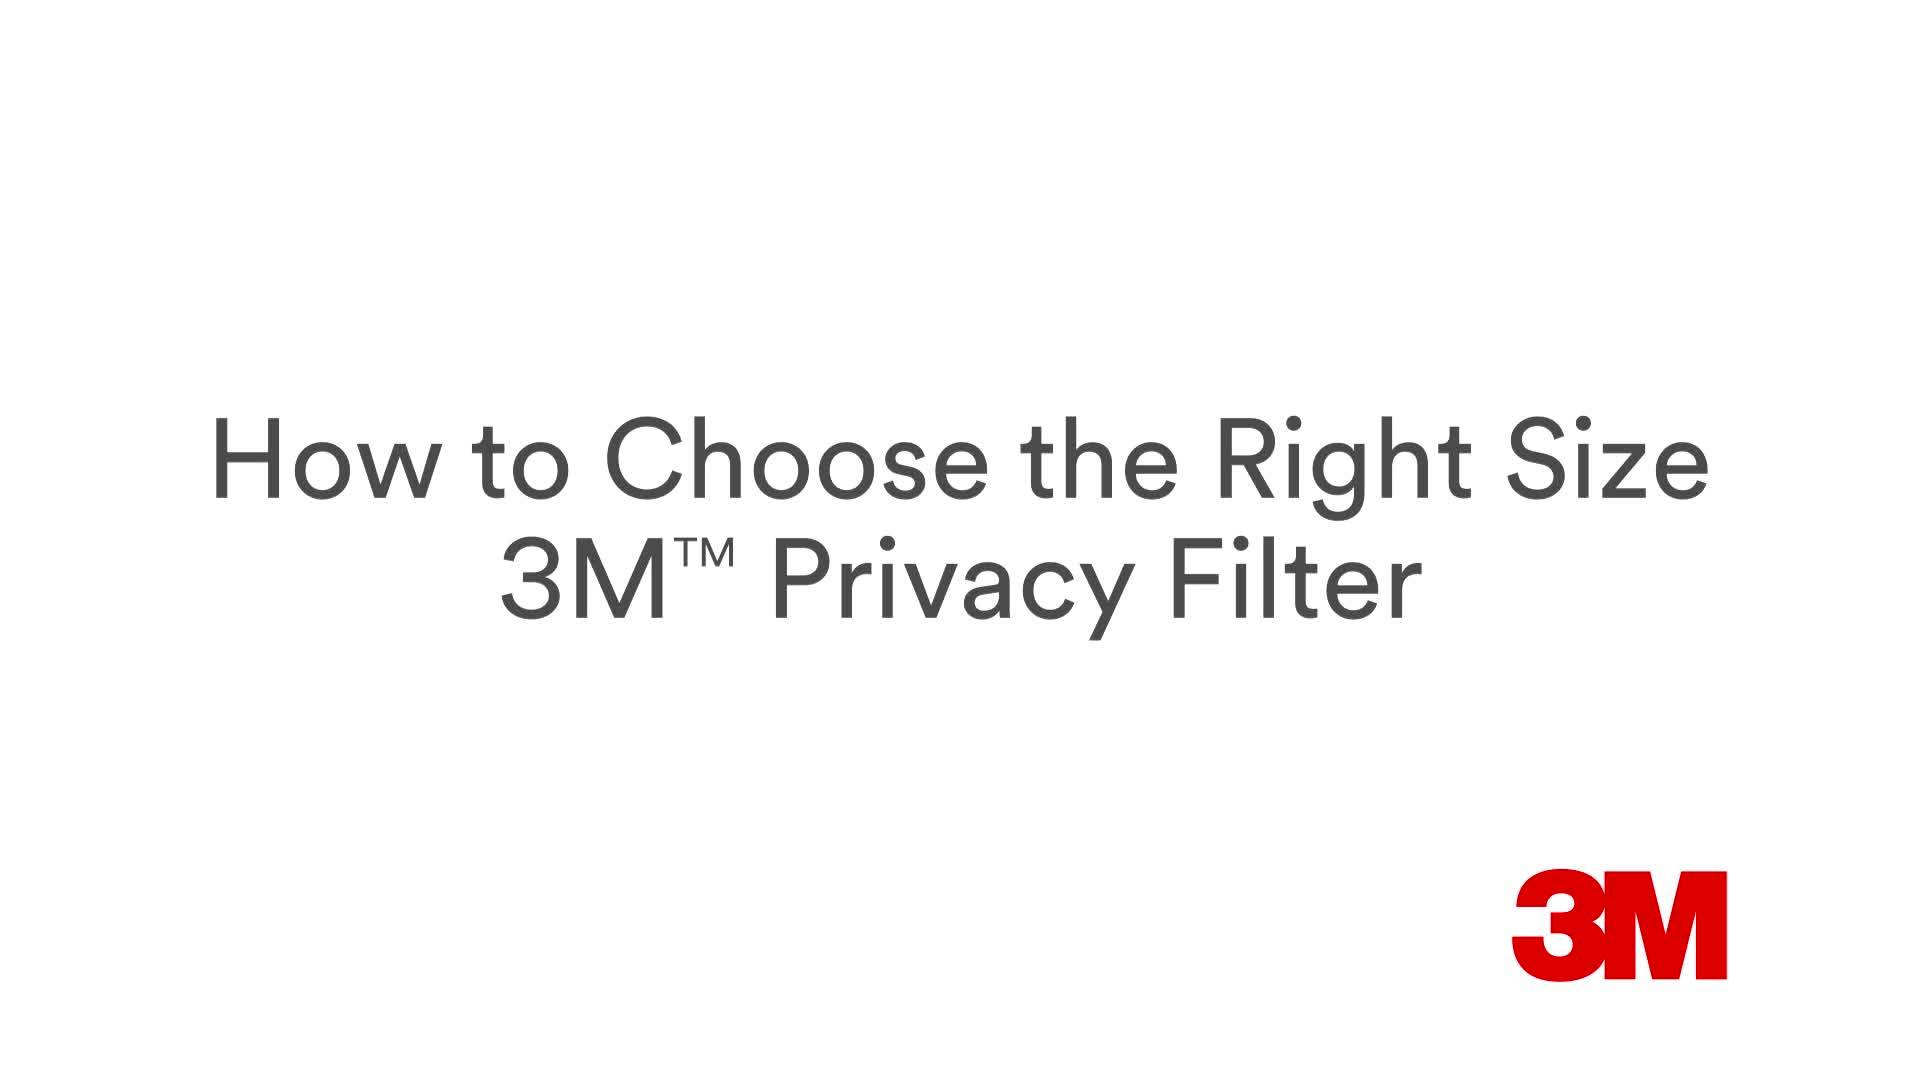 Find the right privacy filter for your screen.